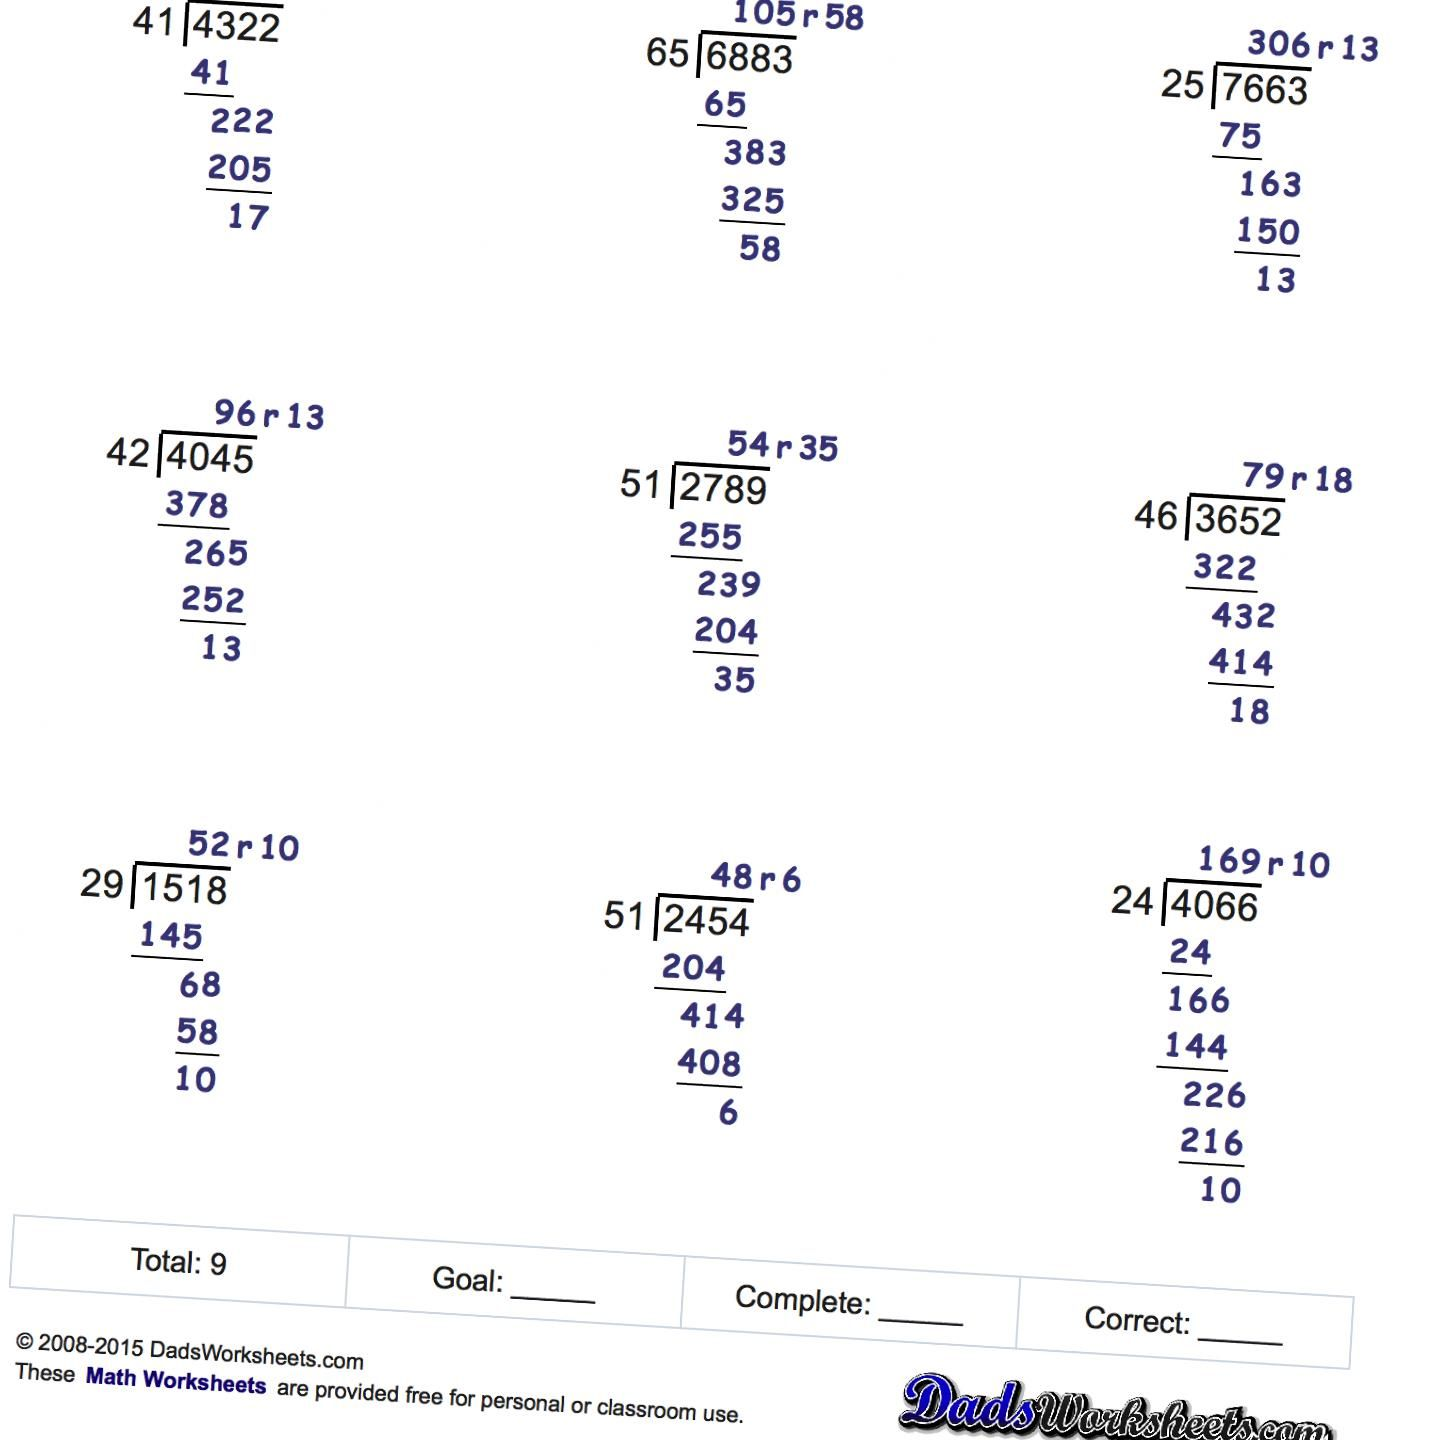 worksheet 2 Digit Division Worksheet free printable long division worksheets with multiple digit divisors and without remainders